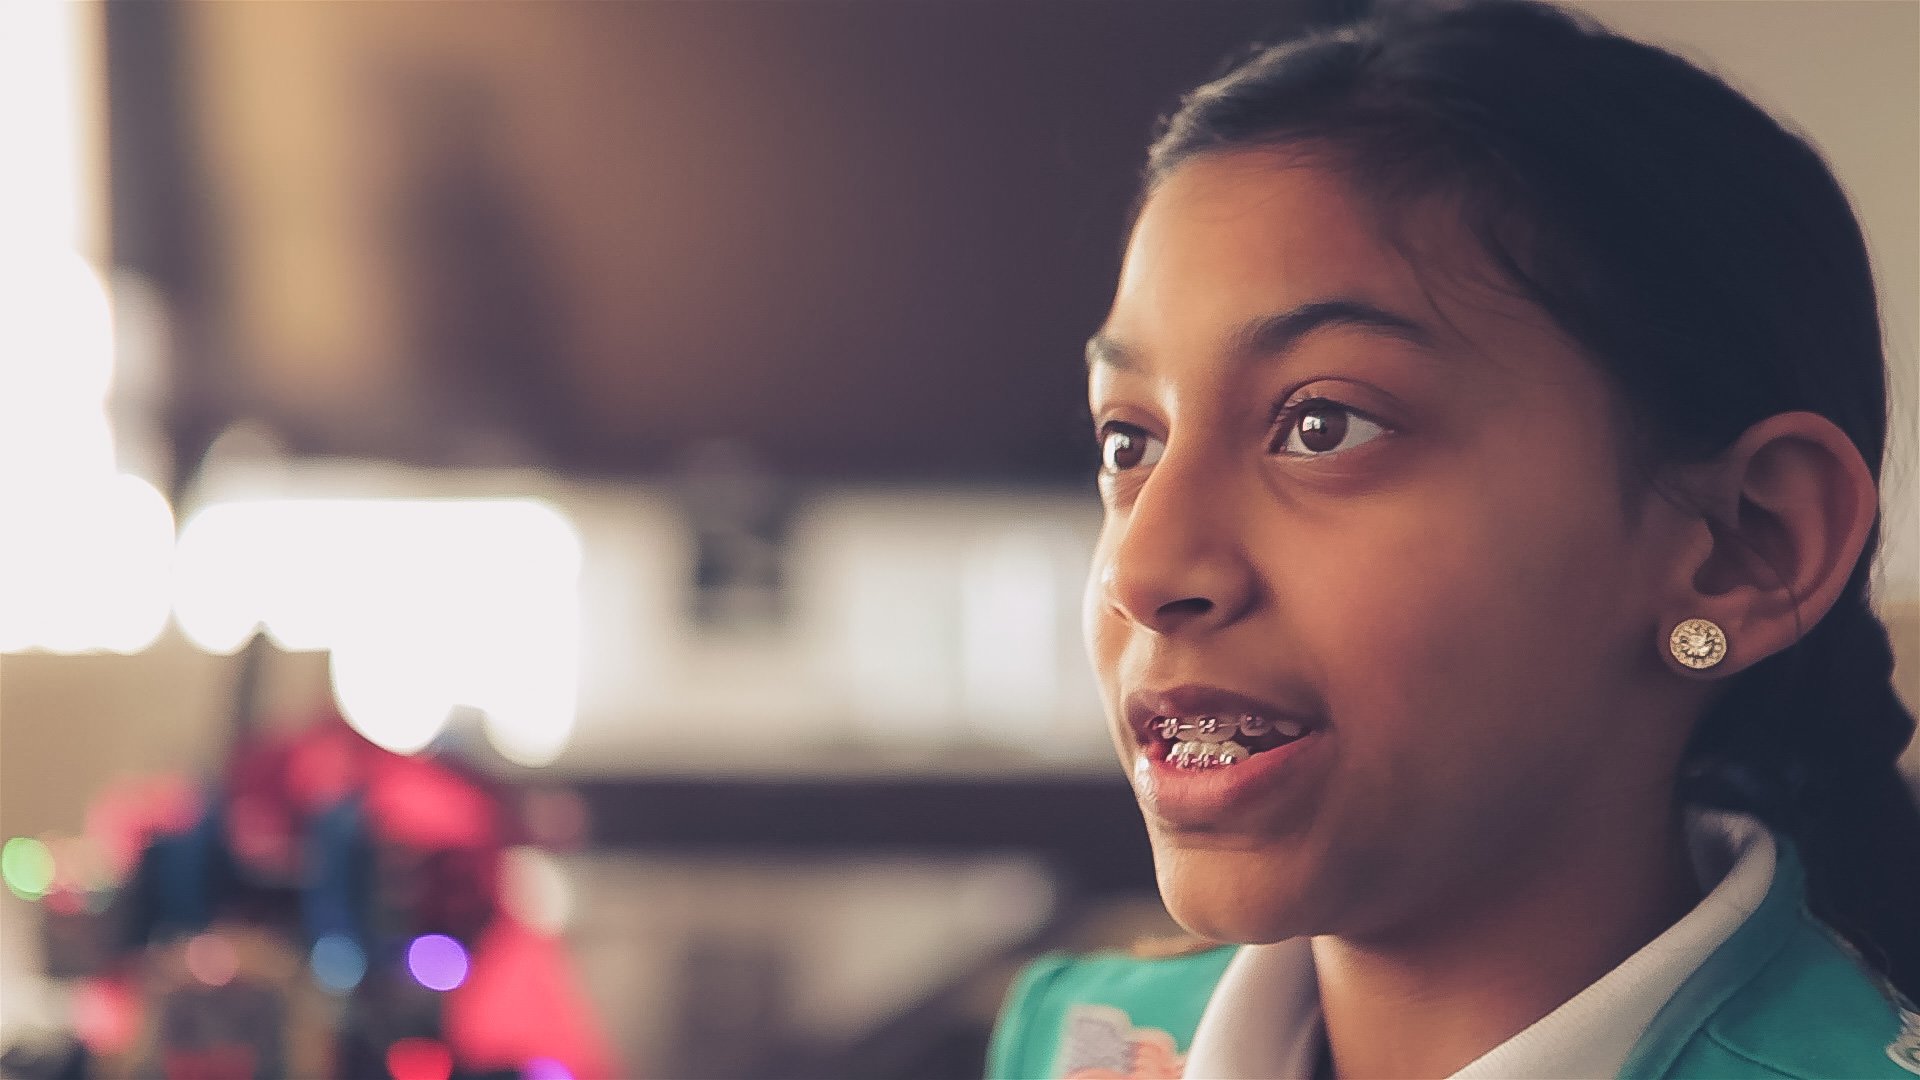 Girl Scout member smiling while being interviewed for video